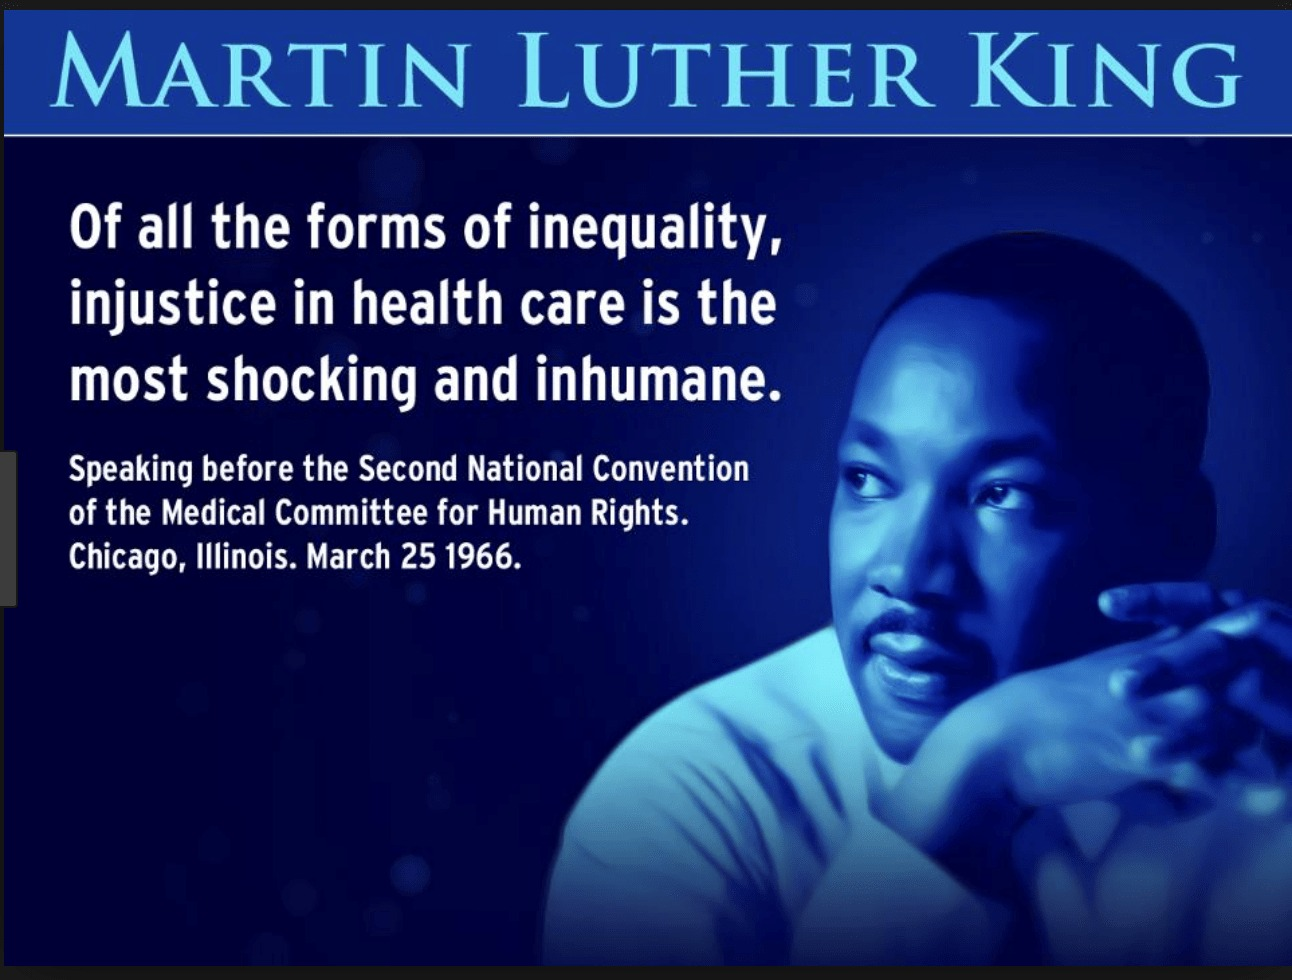 Martin-Luther-King-Of-all-the-forms-of-inequality-injustice-in-health-care-is-the-most-shocking-and-inhumane-1966-meme, Green Party of California condemns Democratic Party 'betrayal' for shelving of Guaranteed Health Care for All Act, AB 1400, Local News & Views